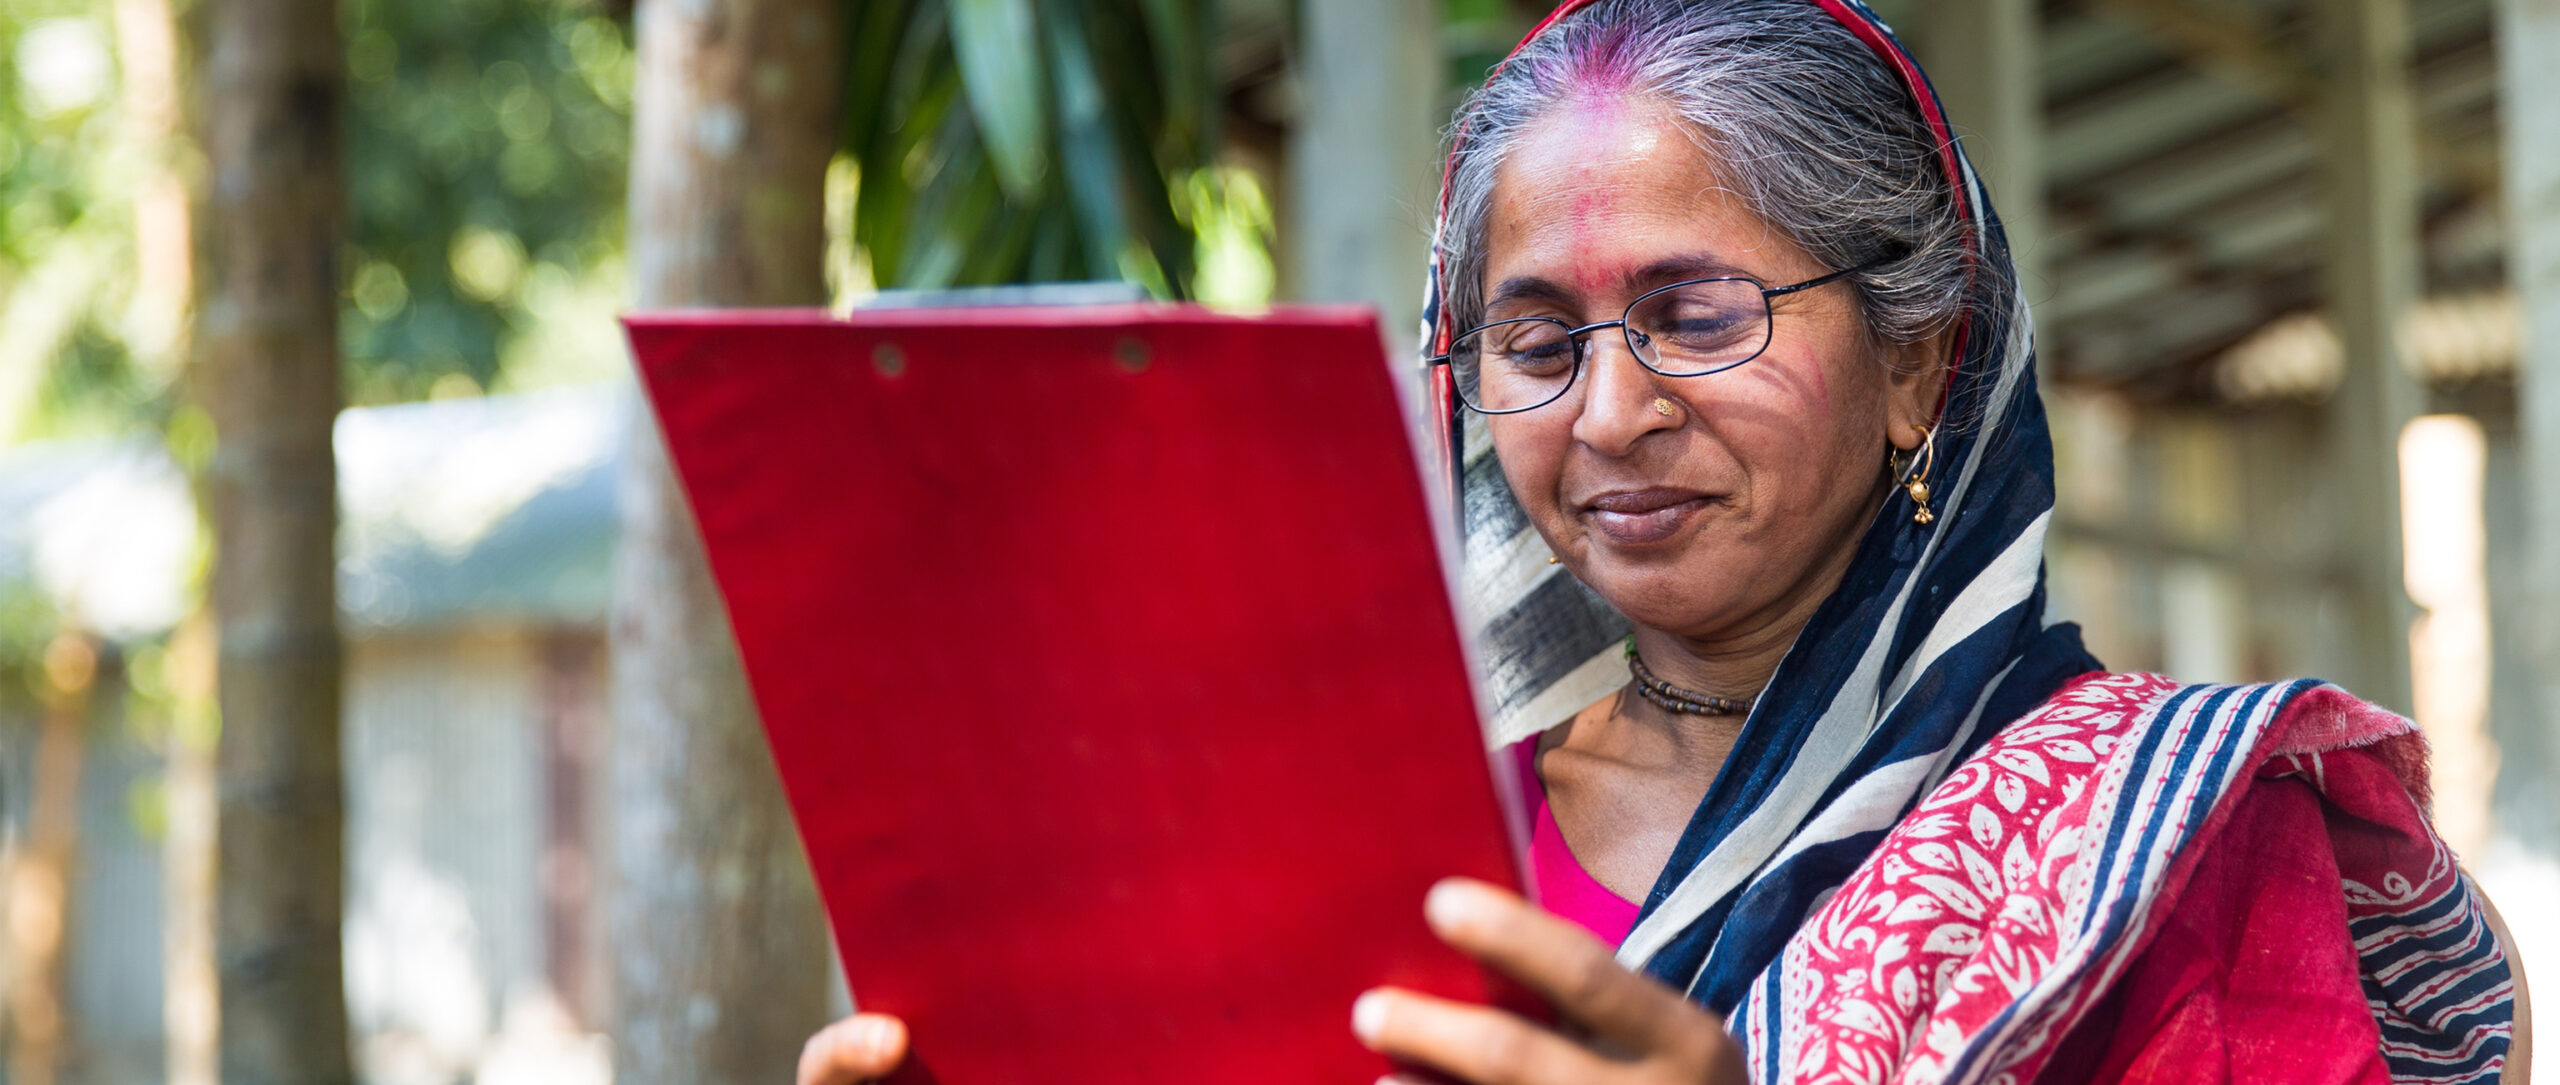 A woman in northern Bangladesh uses new reading glasses, purchased through VisionSpring's Reading Glasses for Improved Livelihoods (RGIL) program, to read clearly for the first time in years. The RGIL programs screens the vision of more than 1 million working age adults per year alongside BRAC community health workers in Bangladesh and Uganda.